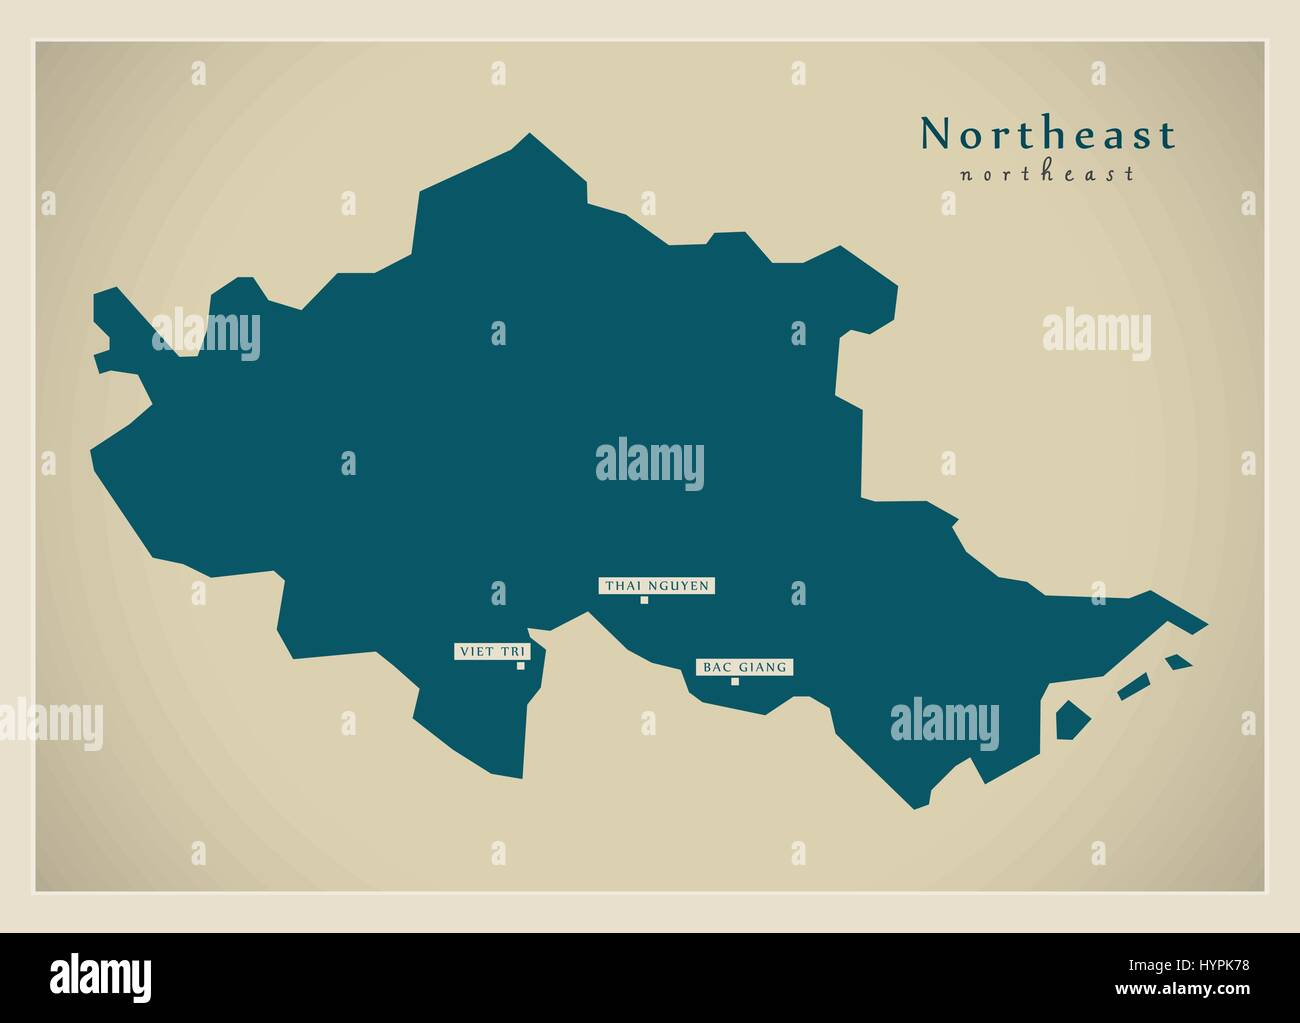 Modern Map - Northeast VN - Stock Vector